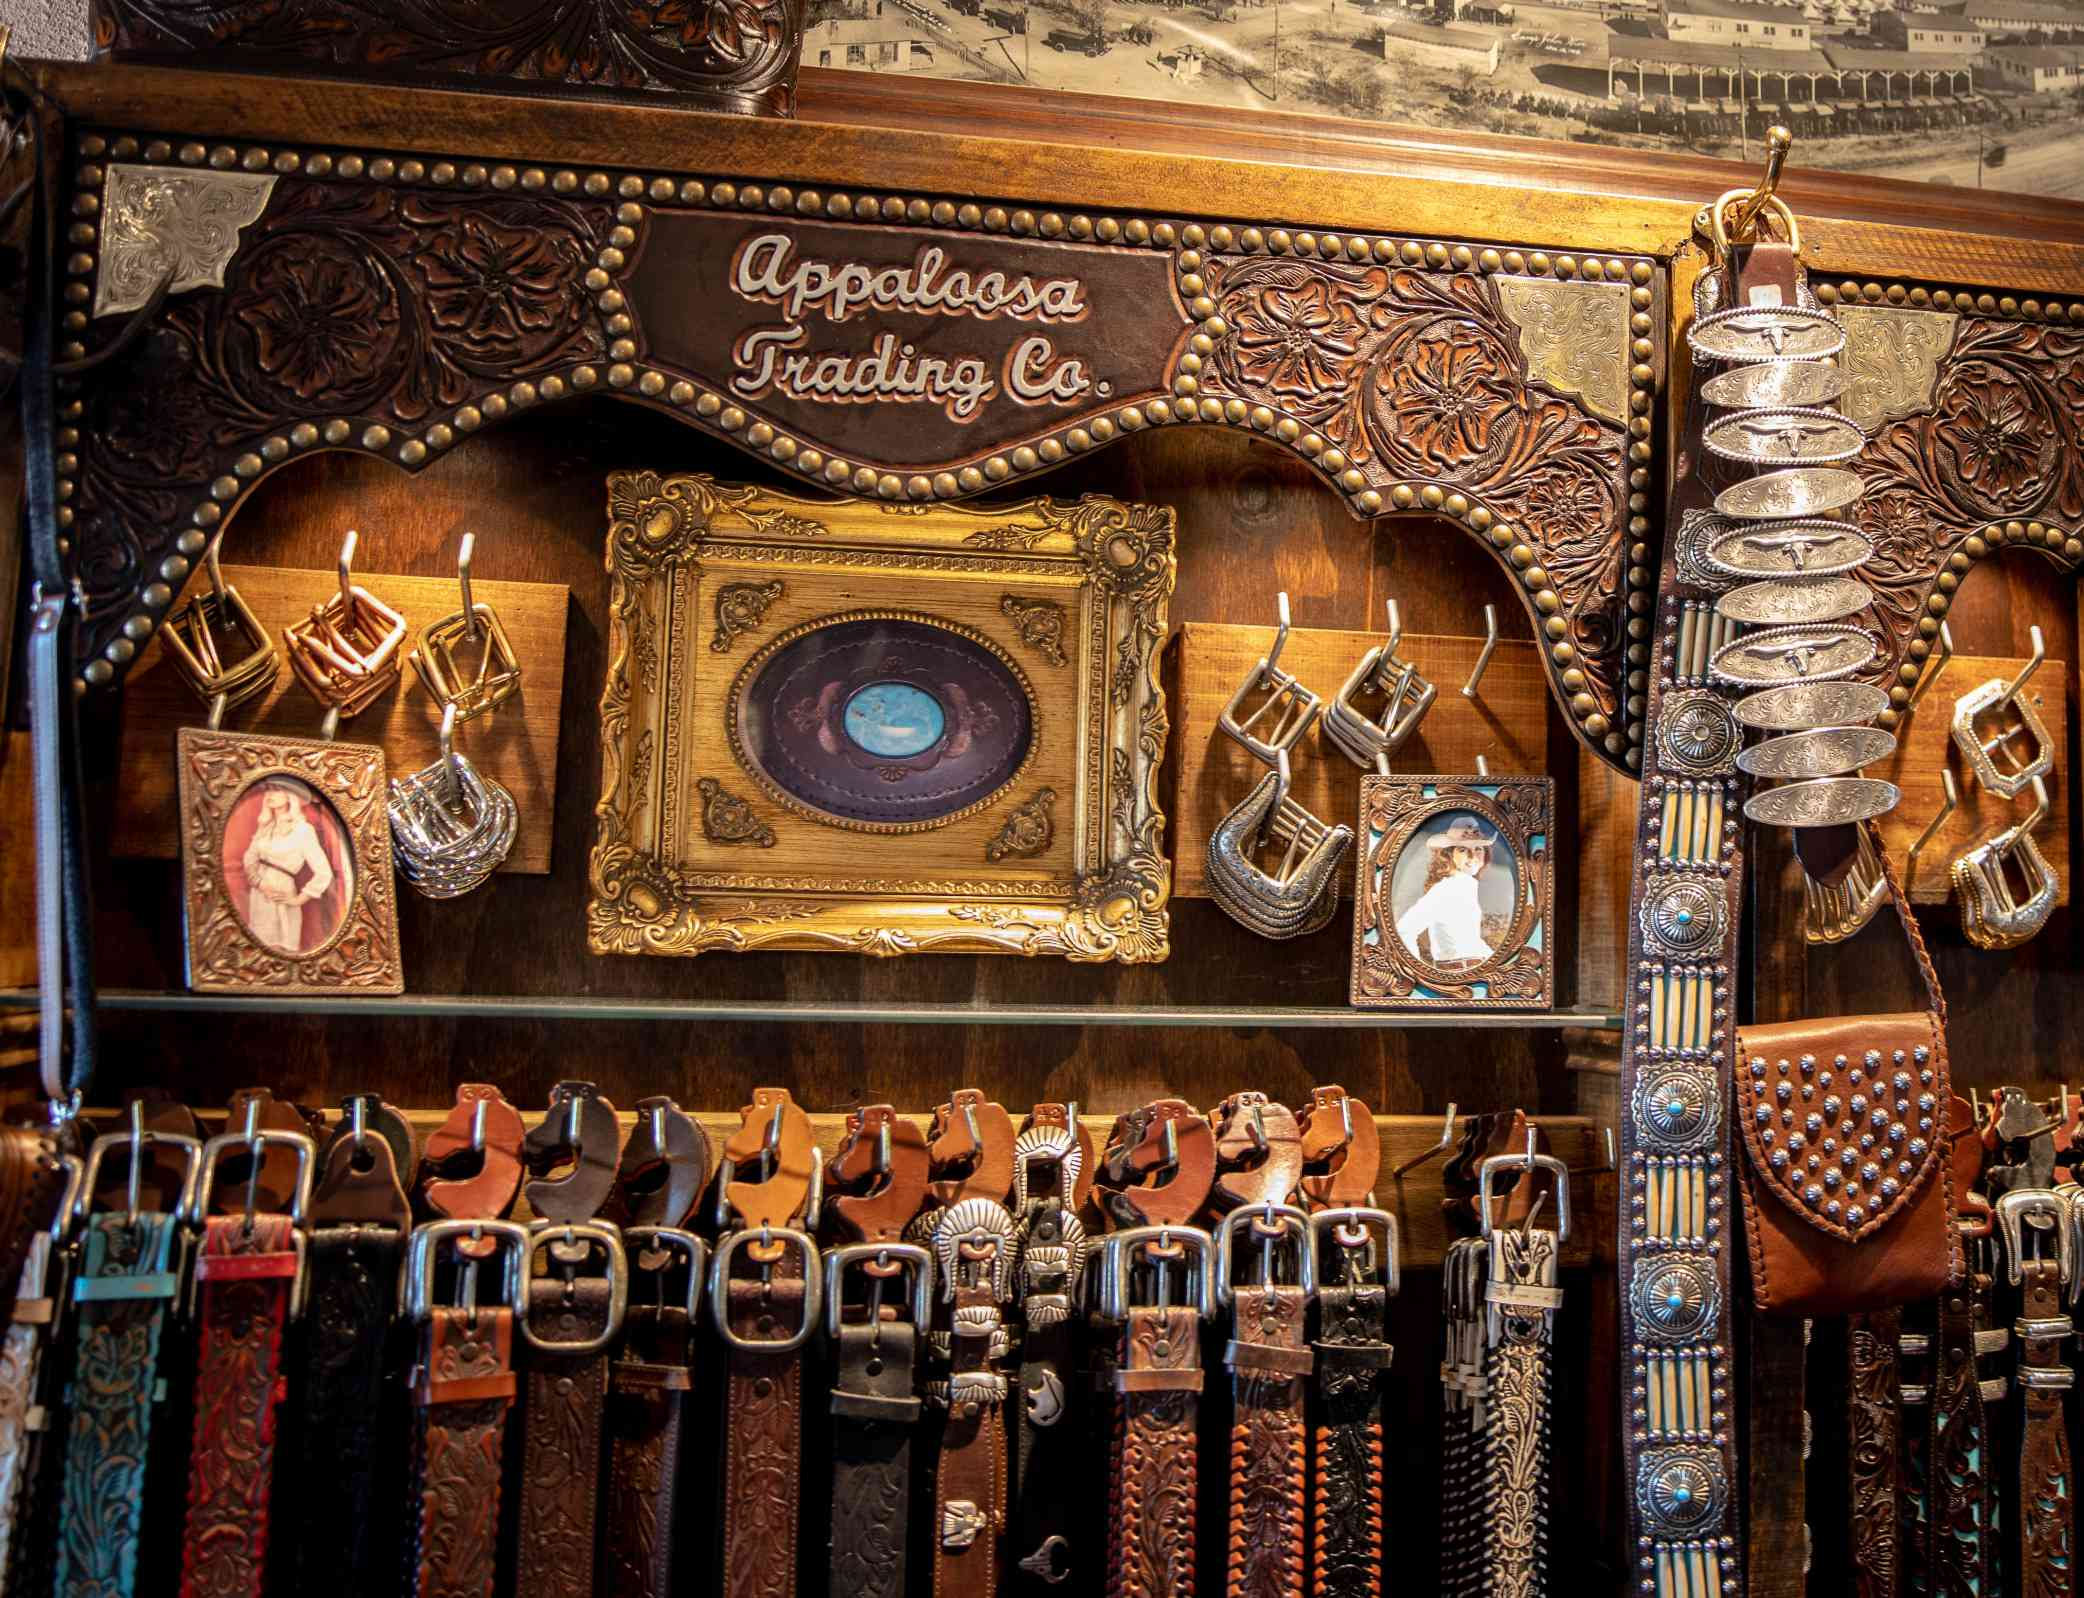 Display of intricately decorated leather belts and buckles